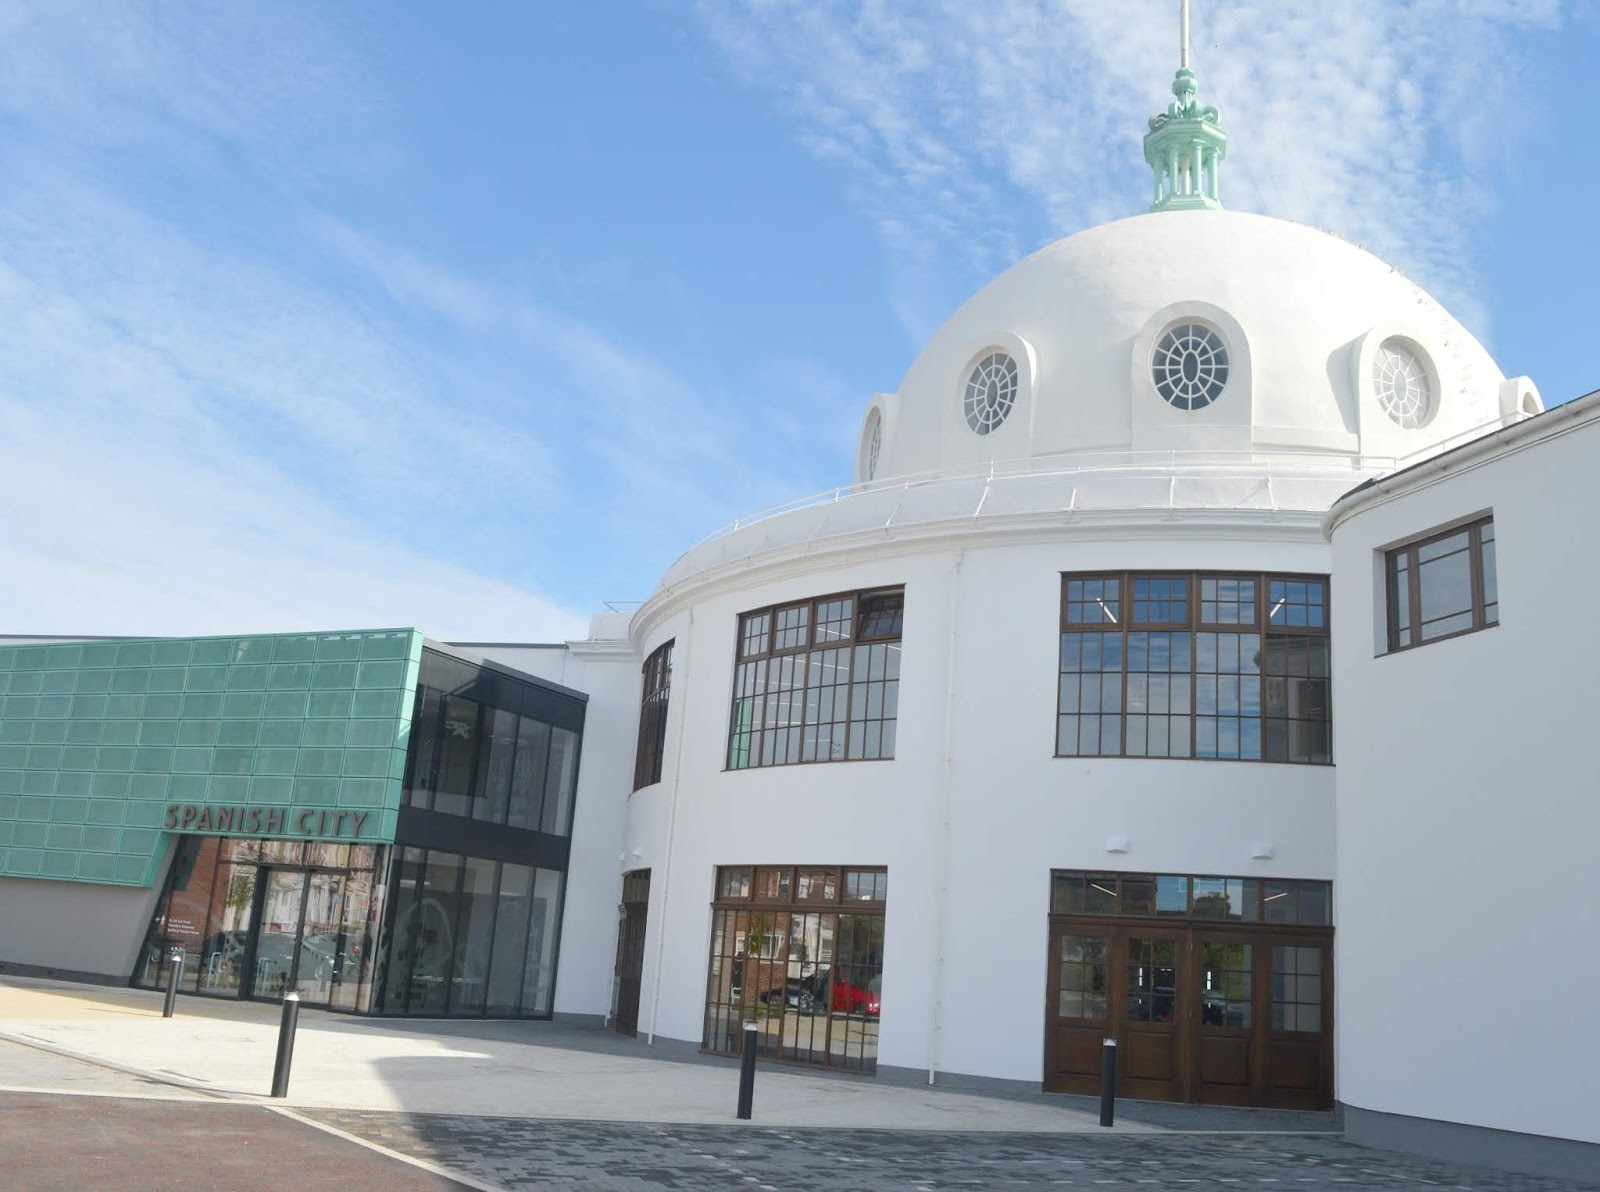 Spanish City, Whitley Bay - What Restaurants are Inside the Dome?